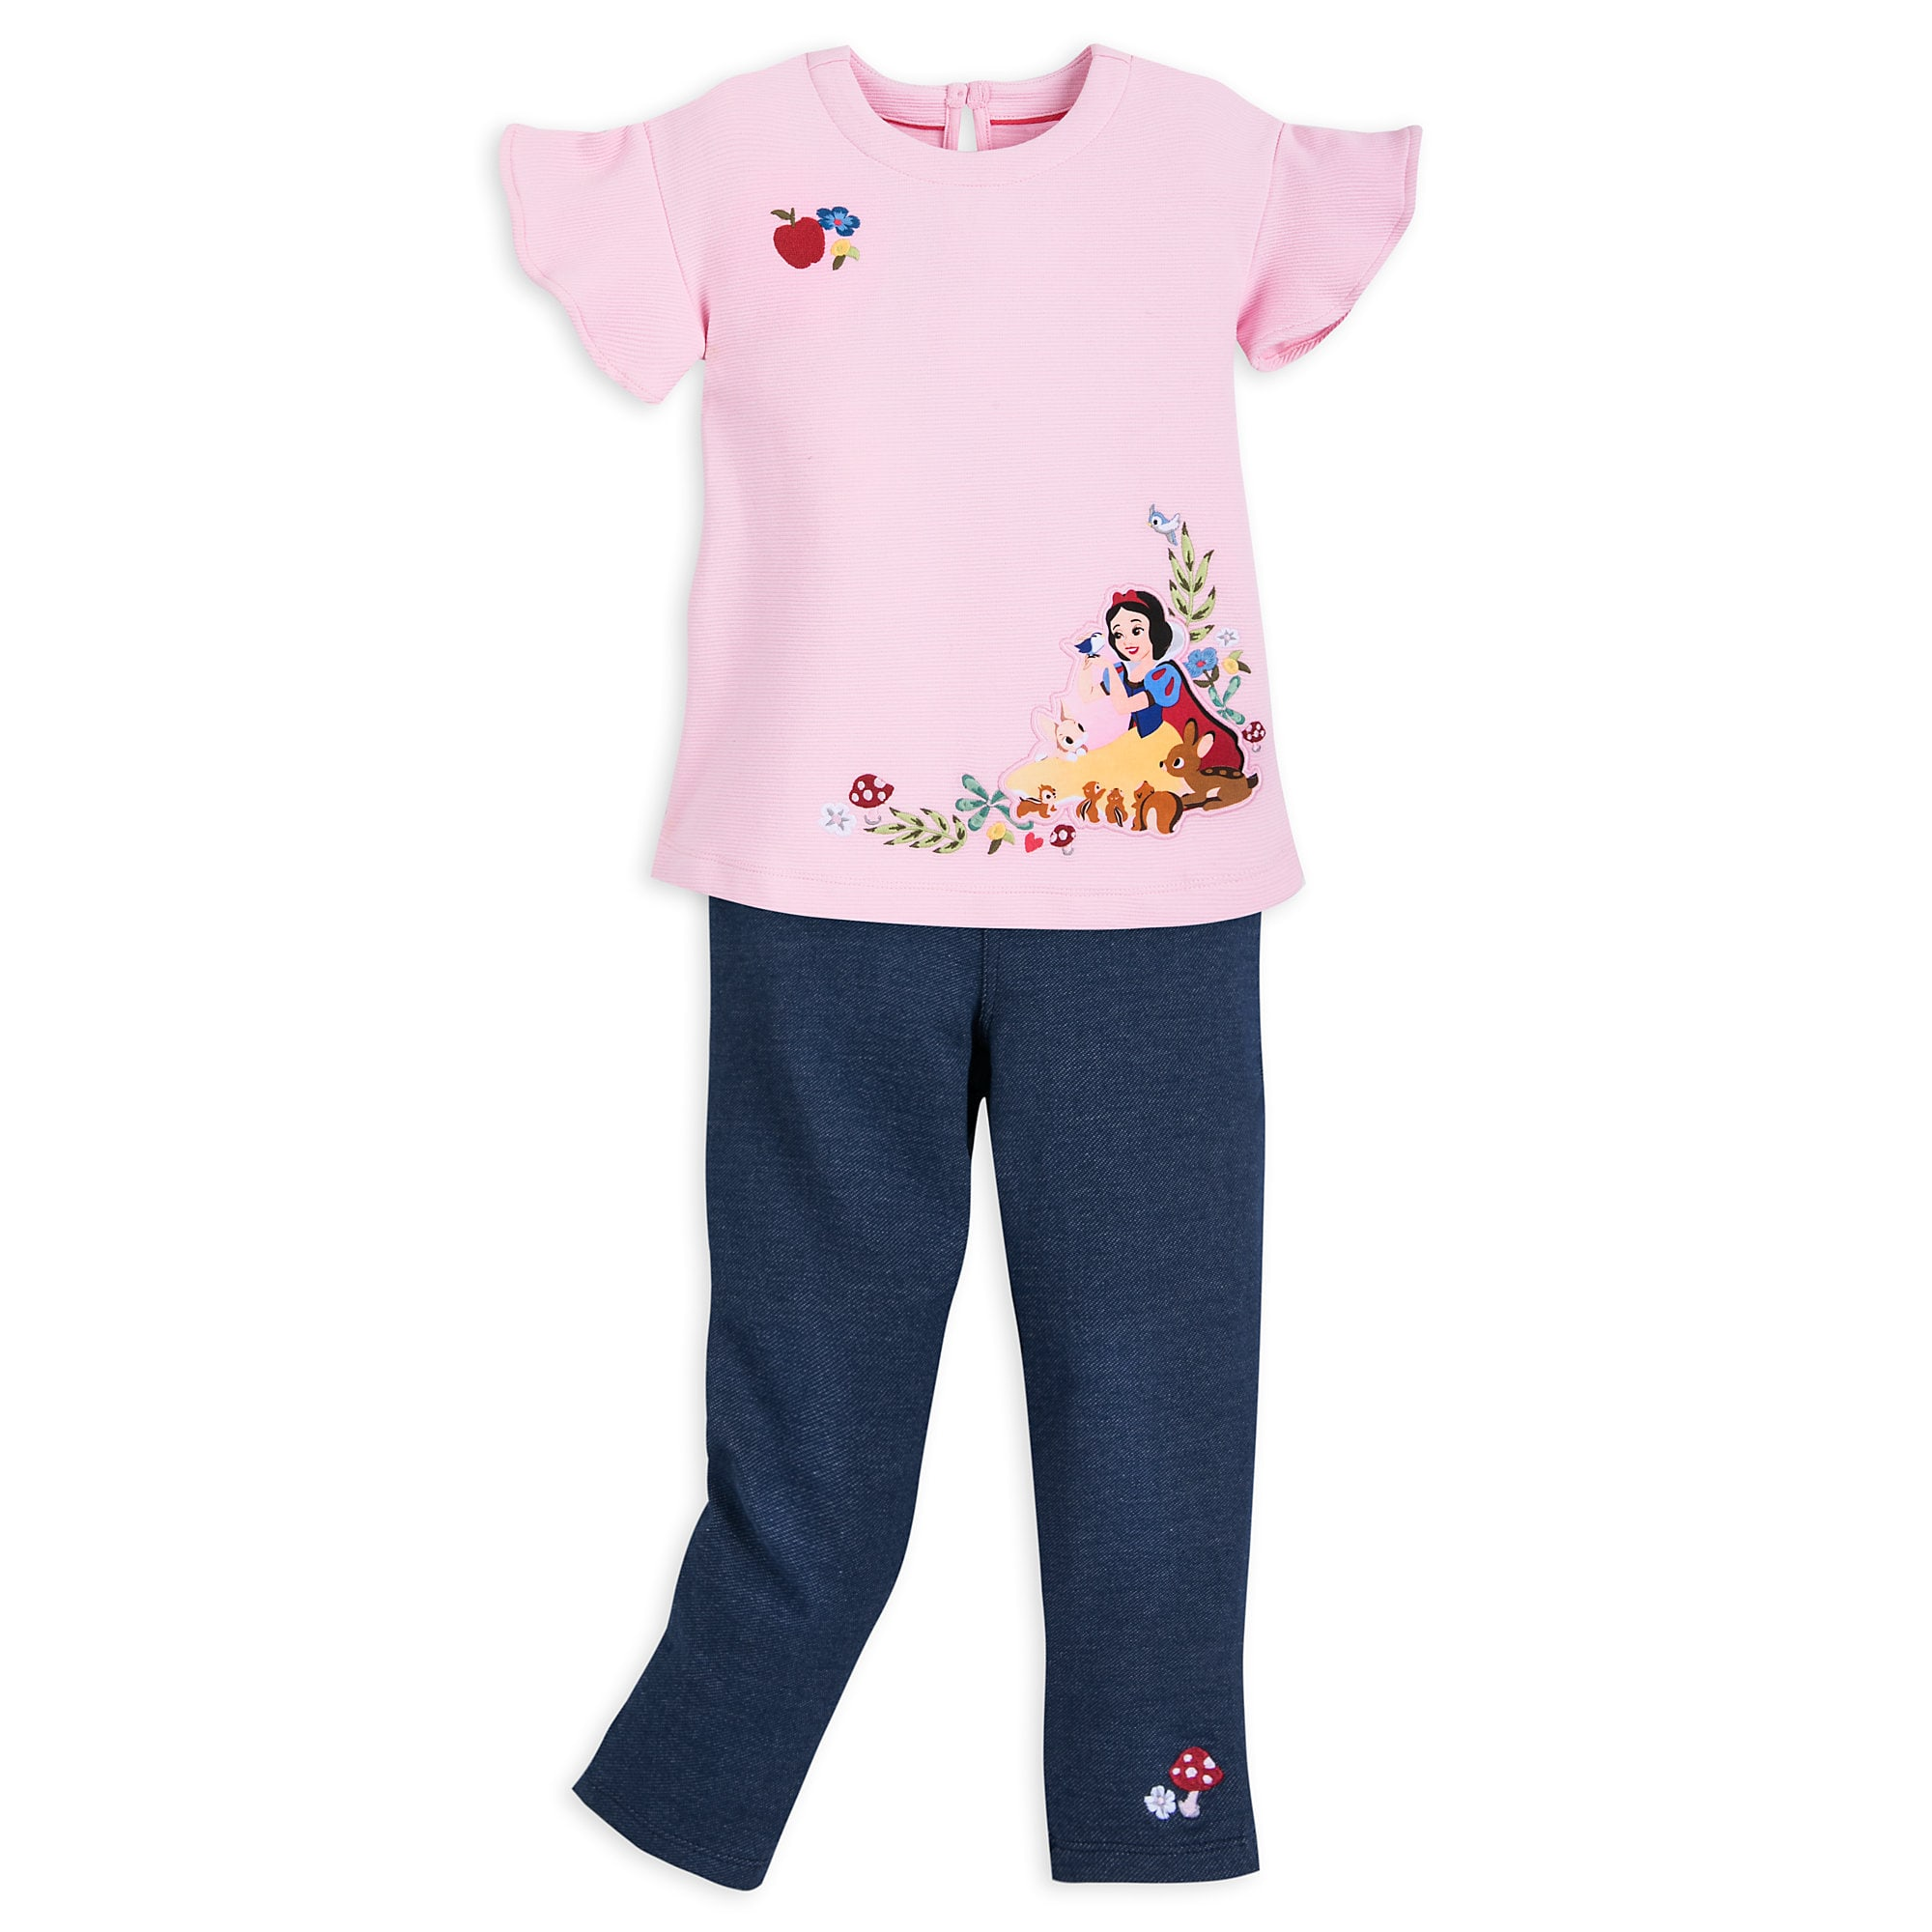 Snow White Top and Leggings Set for Girls